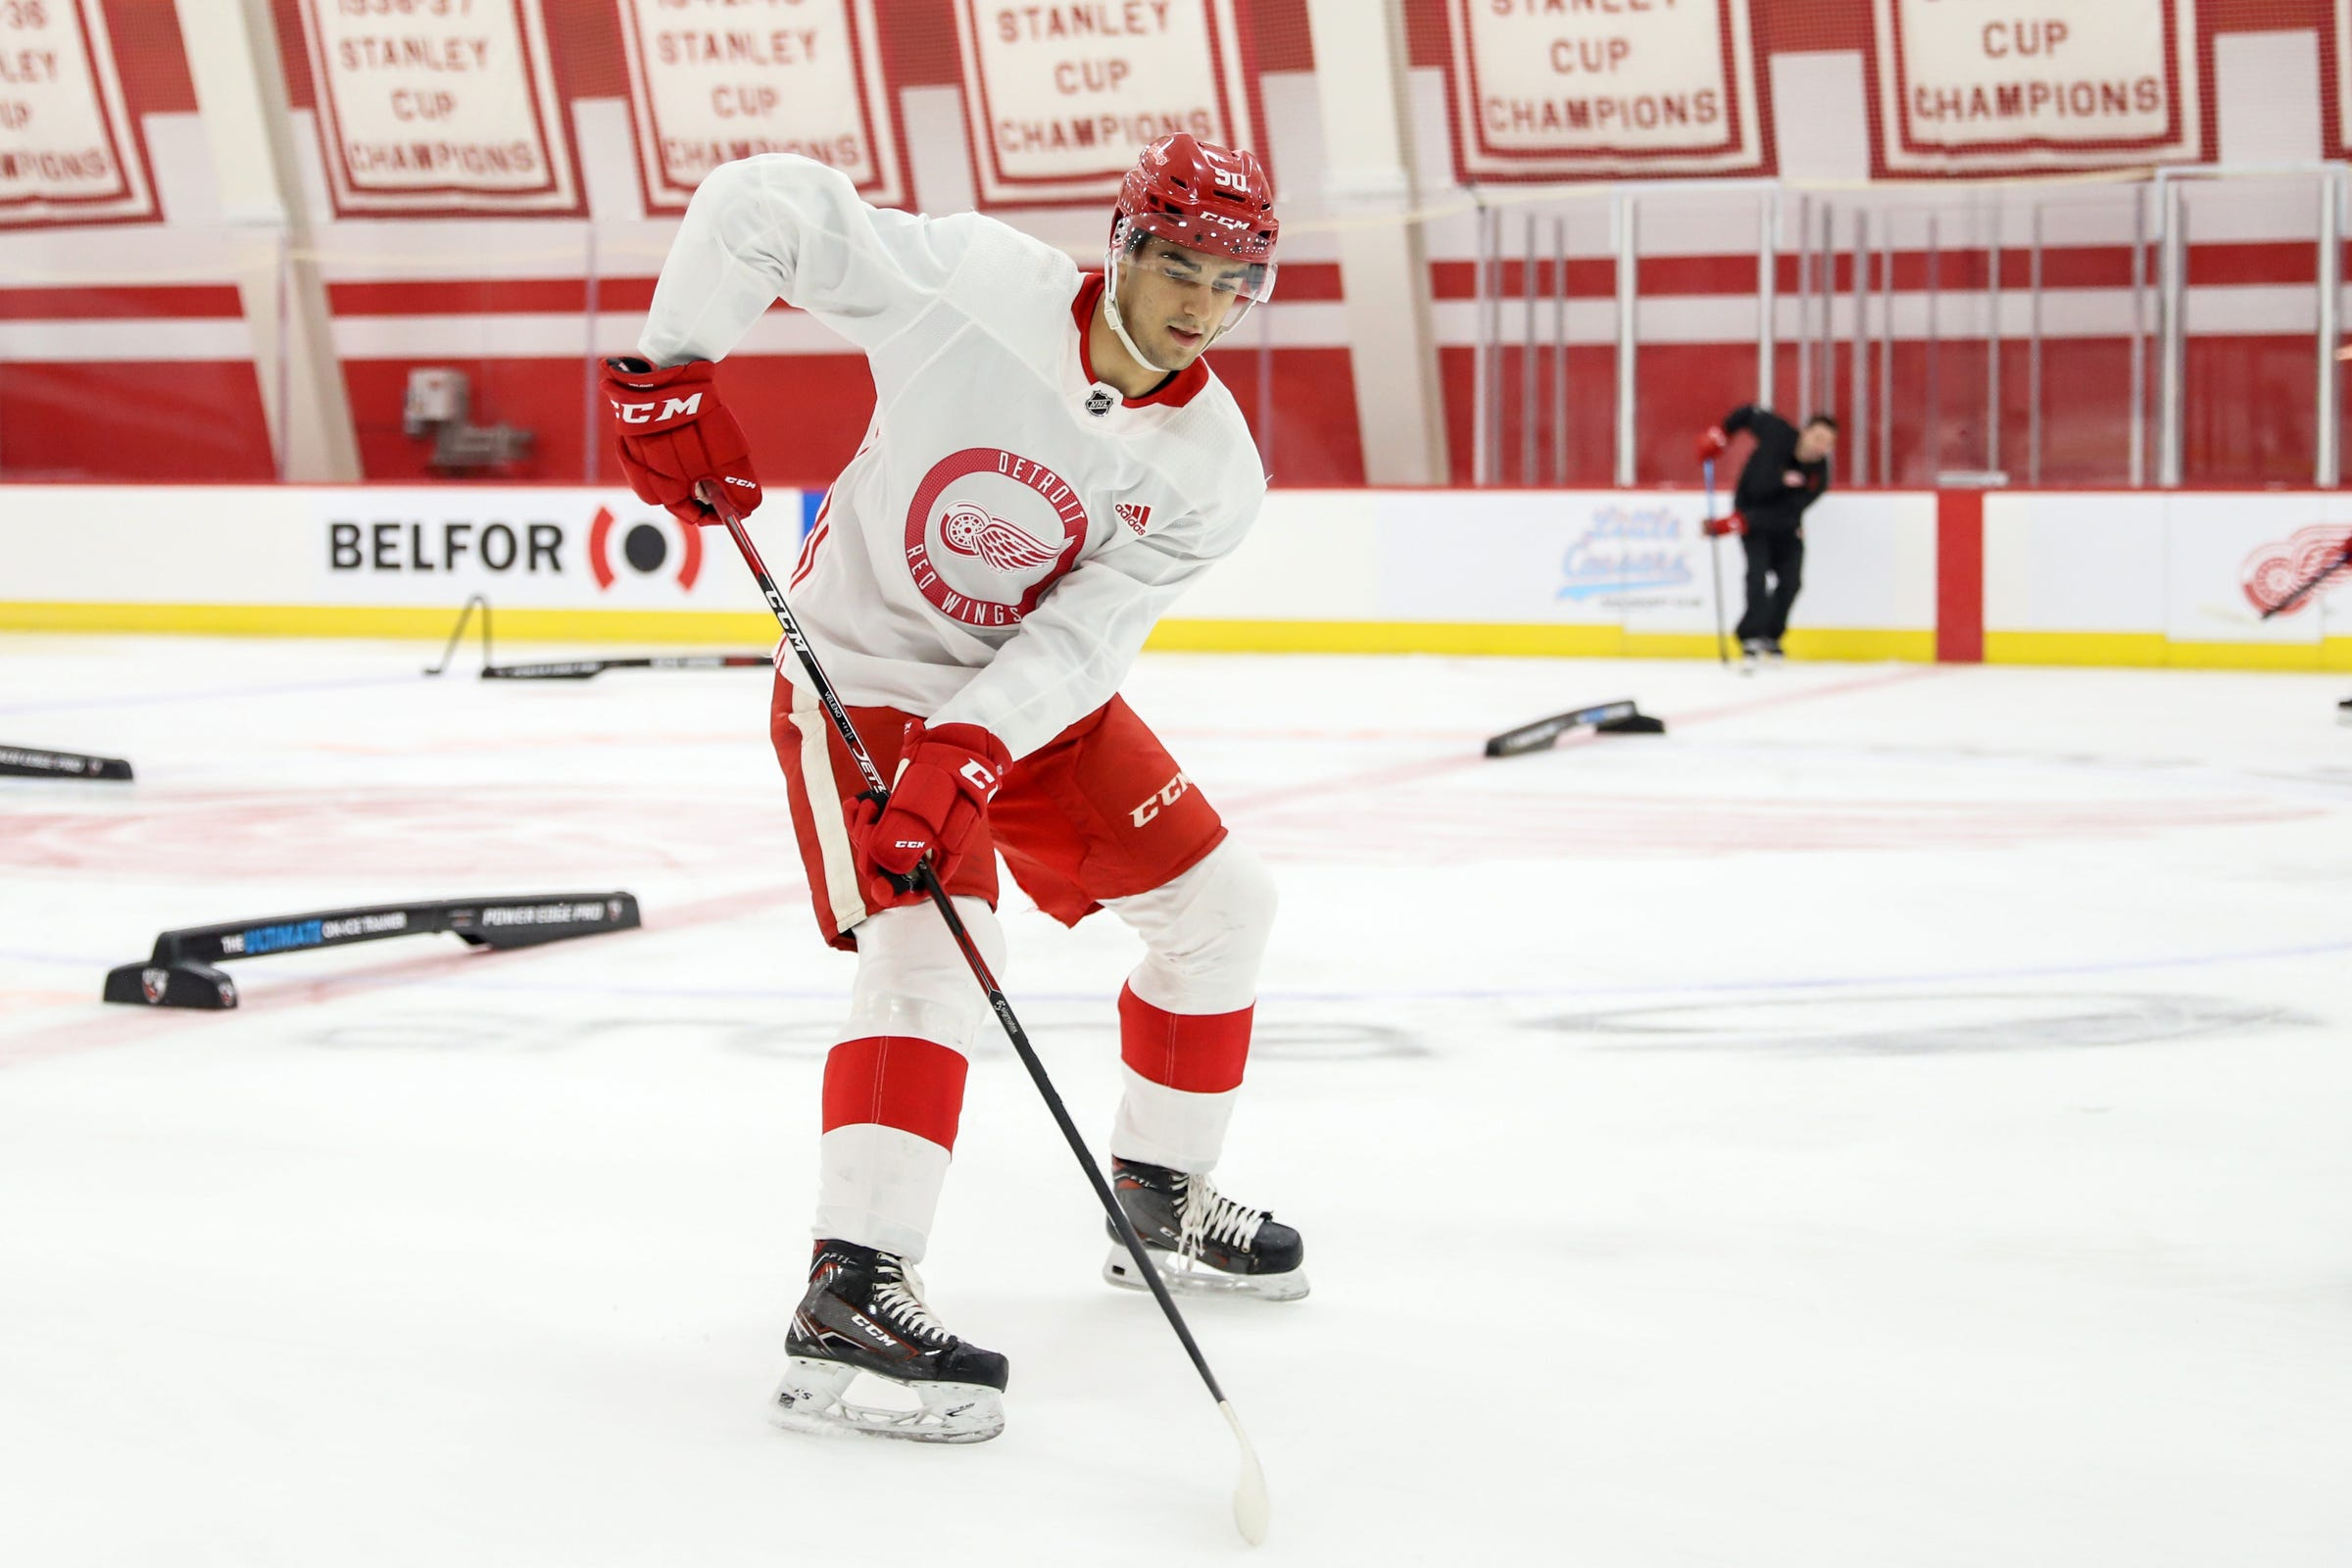 How Joe Veleno can separate himself from other Detroit Red Wings prospects